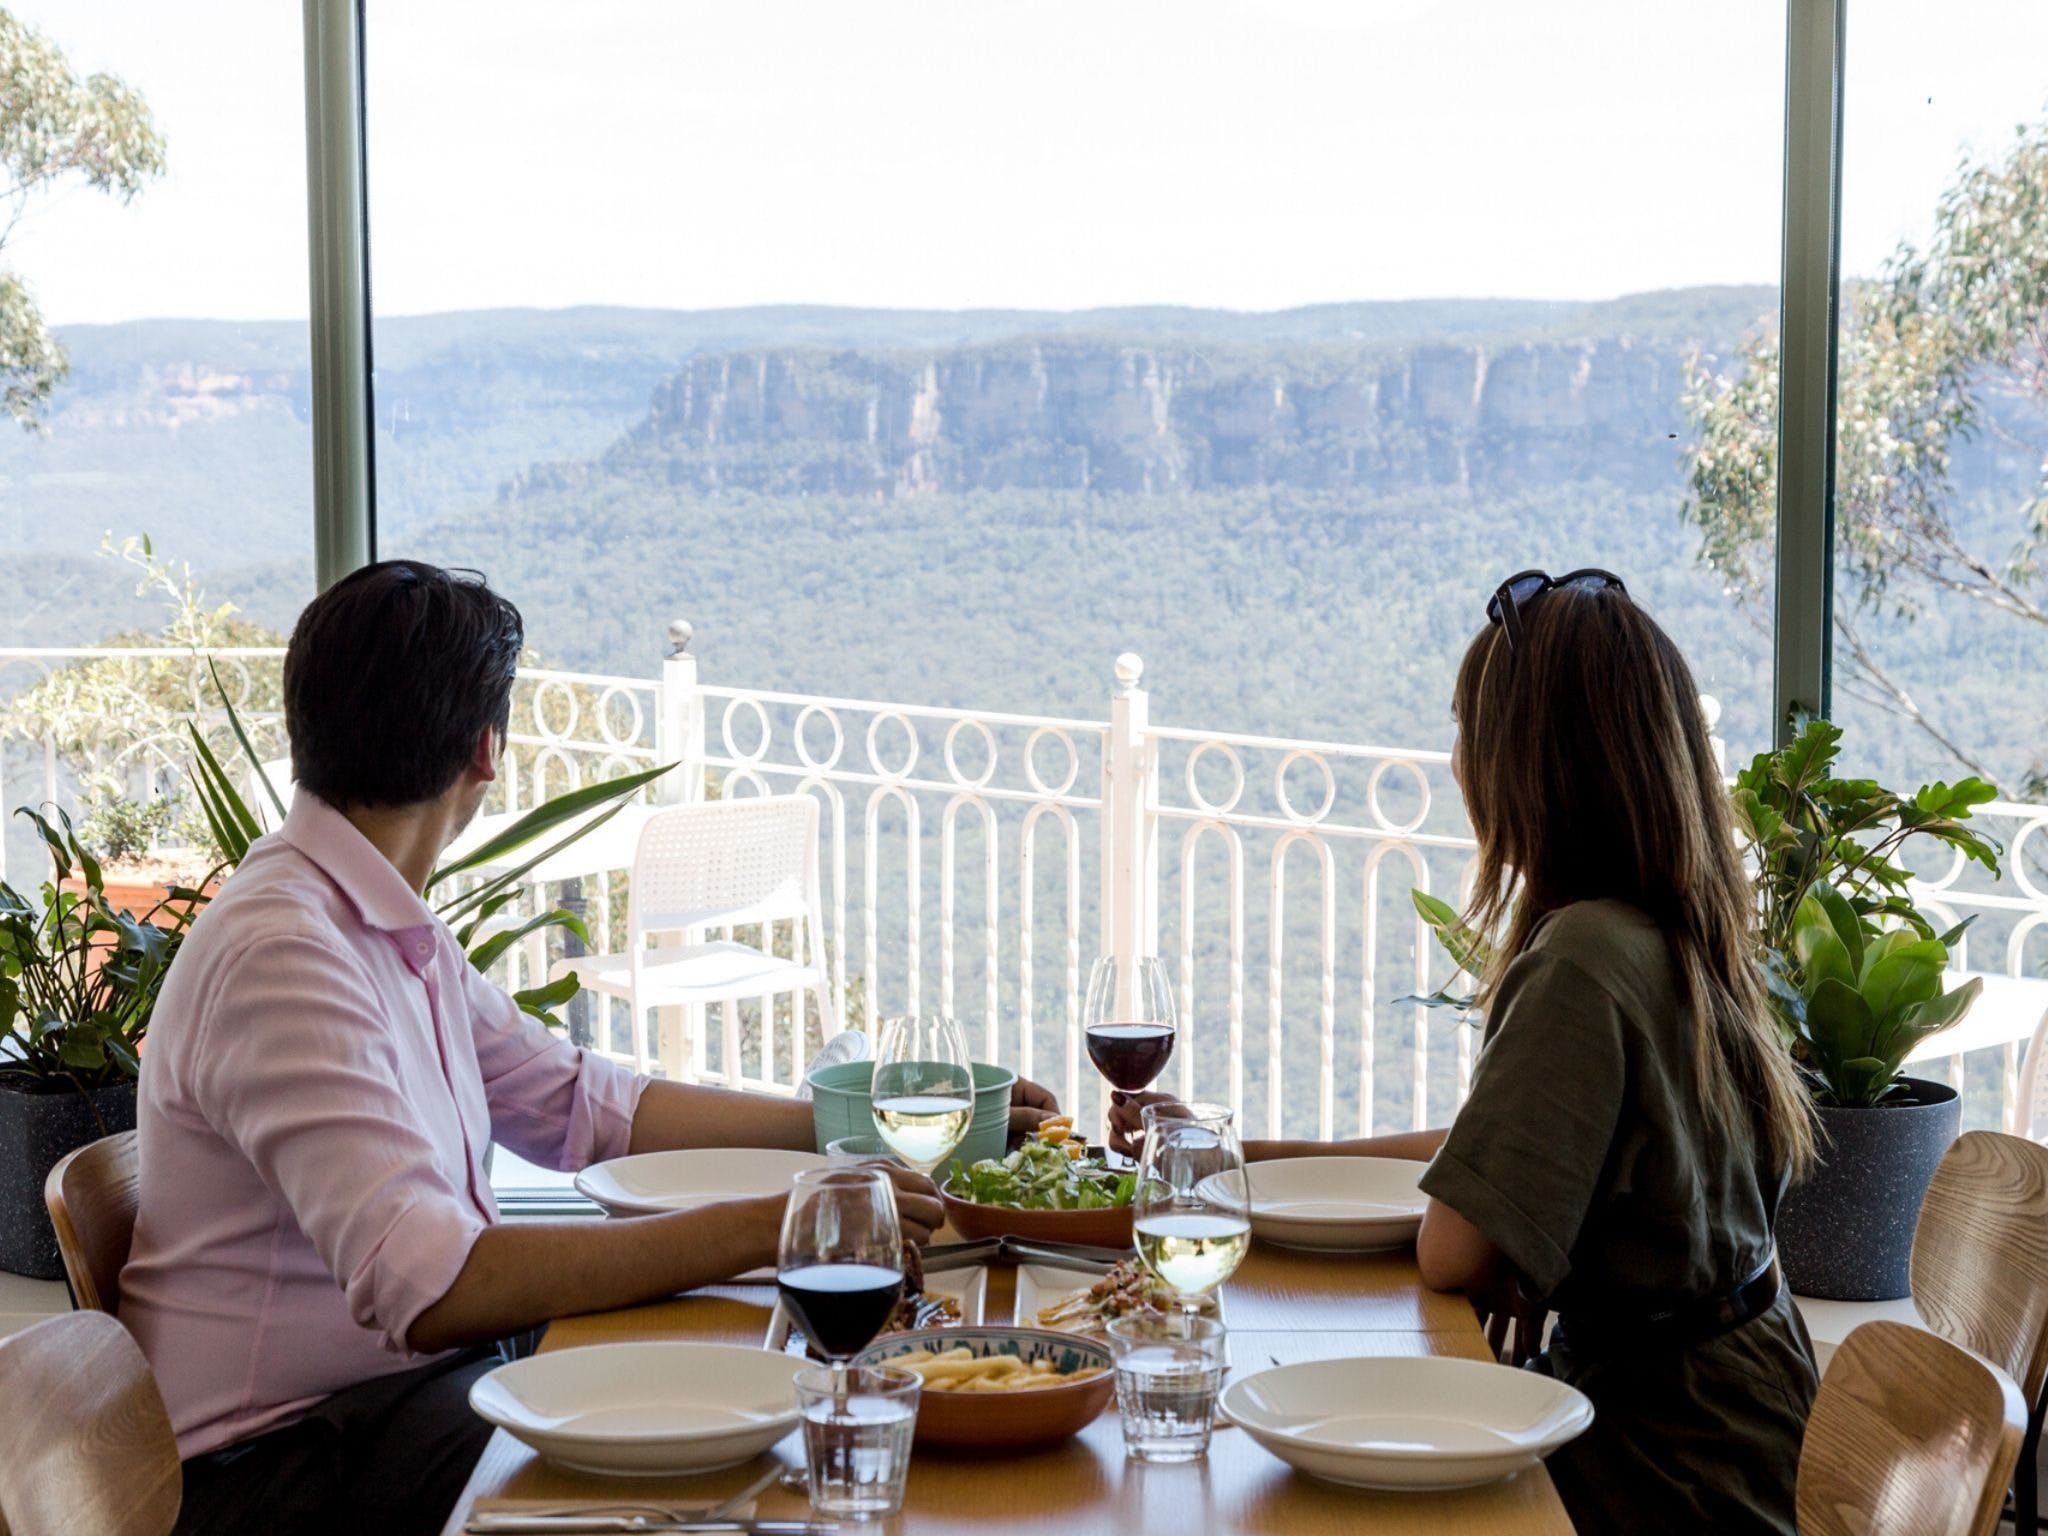 Christmas Day Lunch at The Lookout Echo Point - Accommodation Ballina